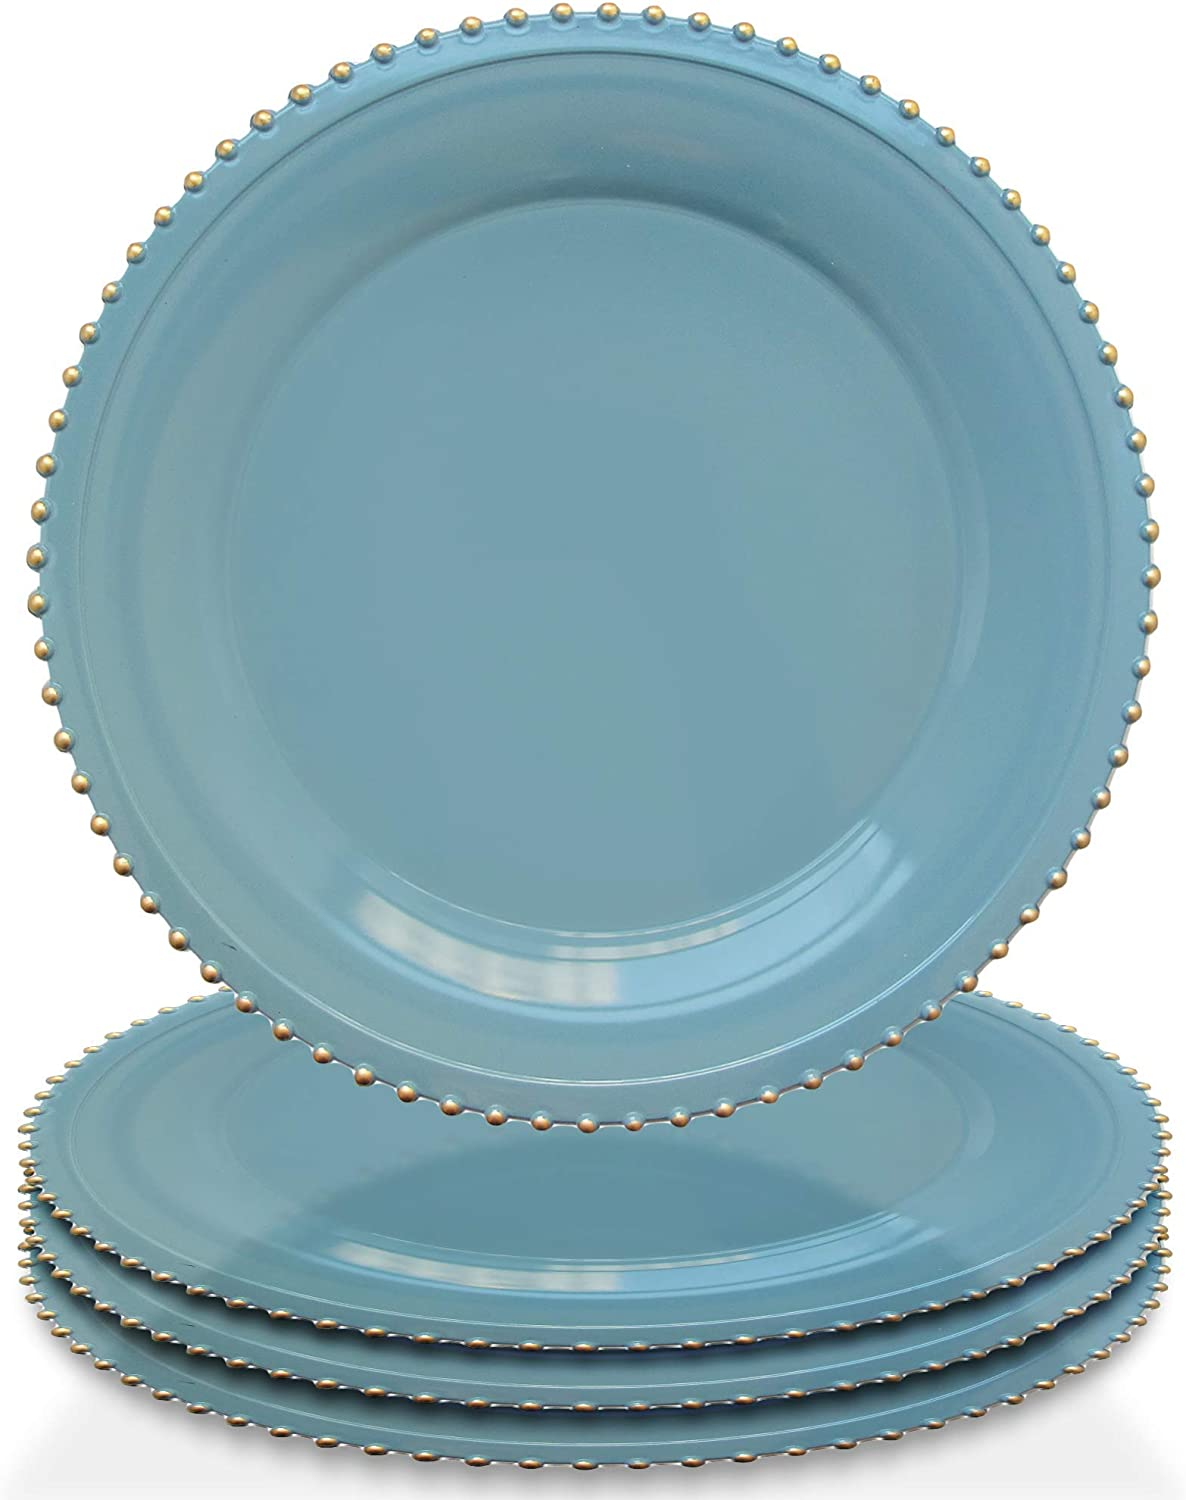 """Elle Decor Beaded Set of 4 Charger Large 13"""" Decorative Melamine Service Plate for Home & Professional Fine Dining-For Catering Events, Dinner Parties, Weddings, Blue"""